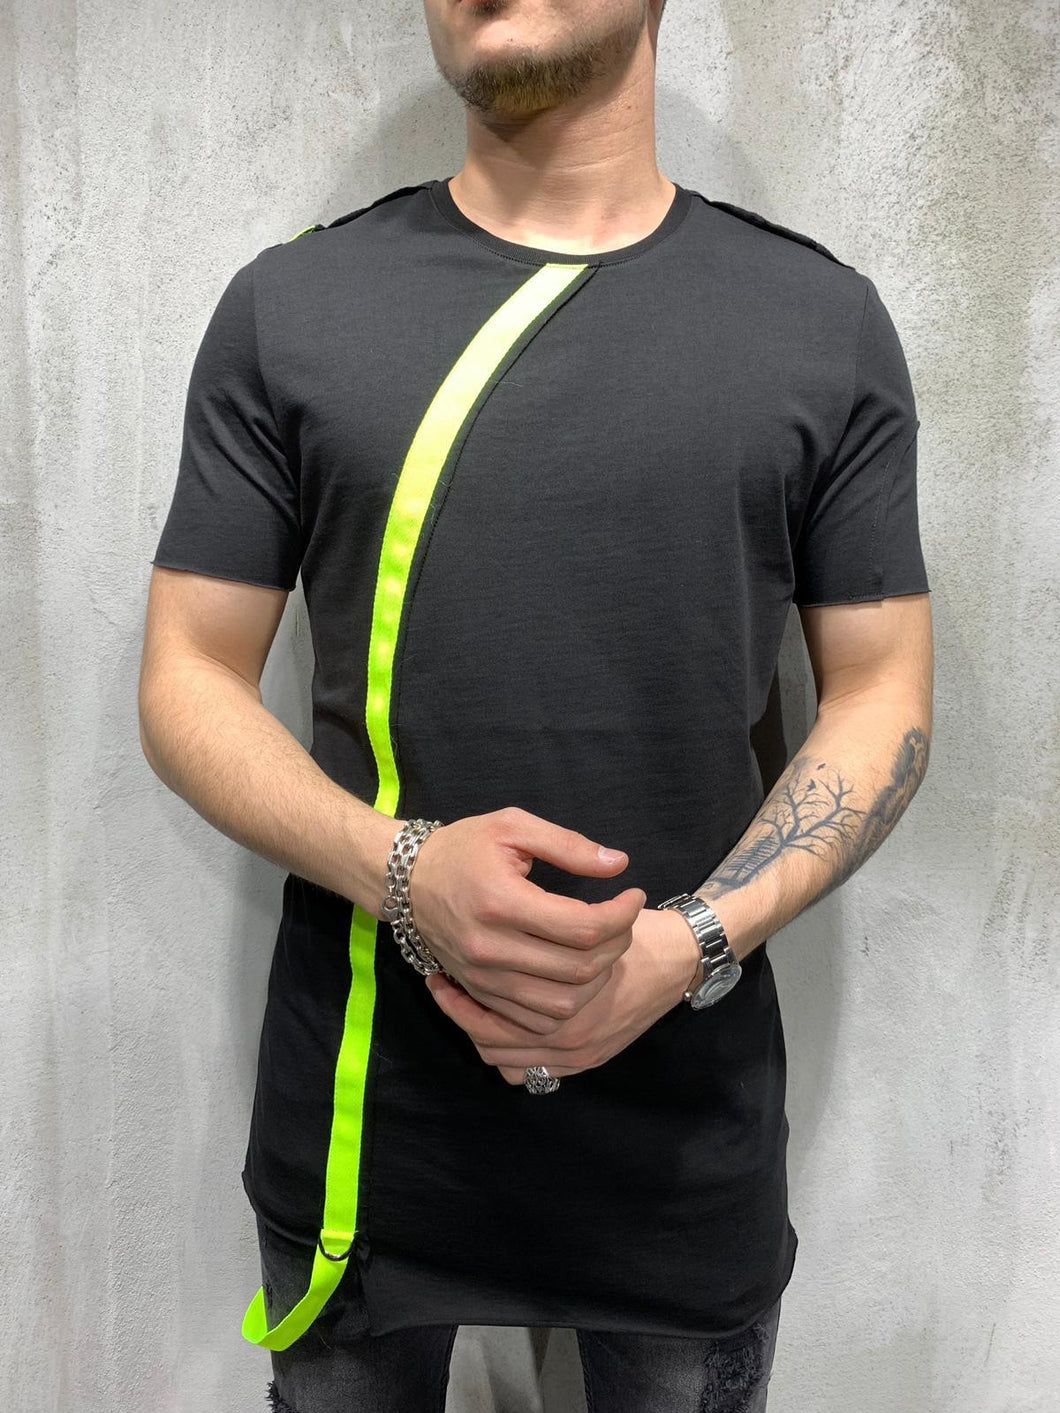 Black Neon Strap Oversized Mens T-Shirt AY431 Streetwear Mens T-Shirts